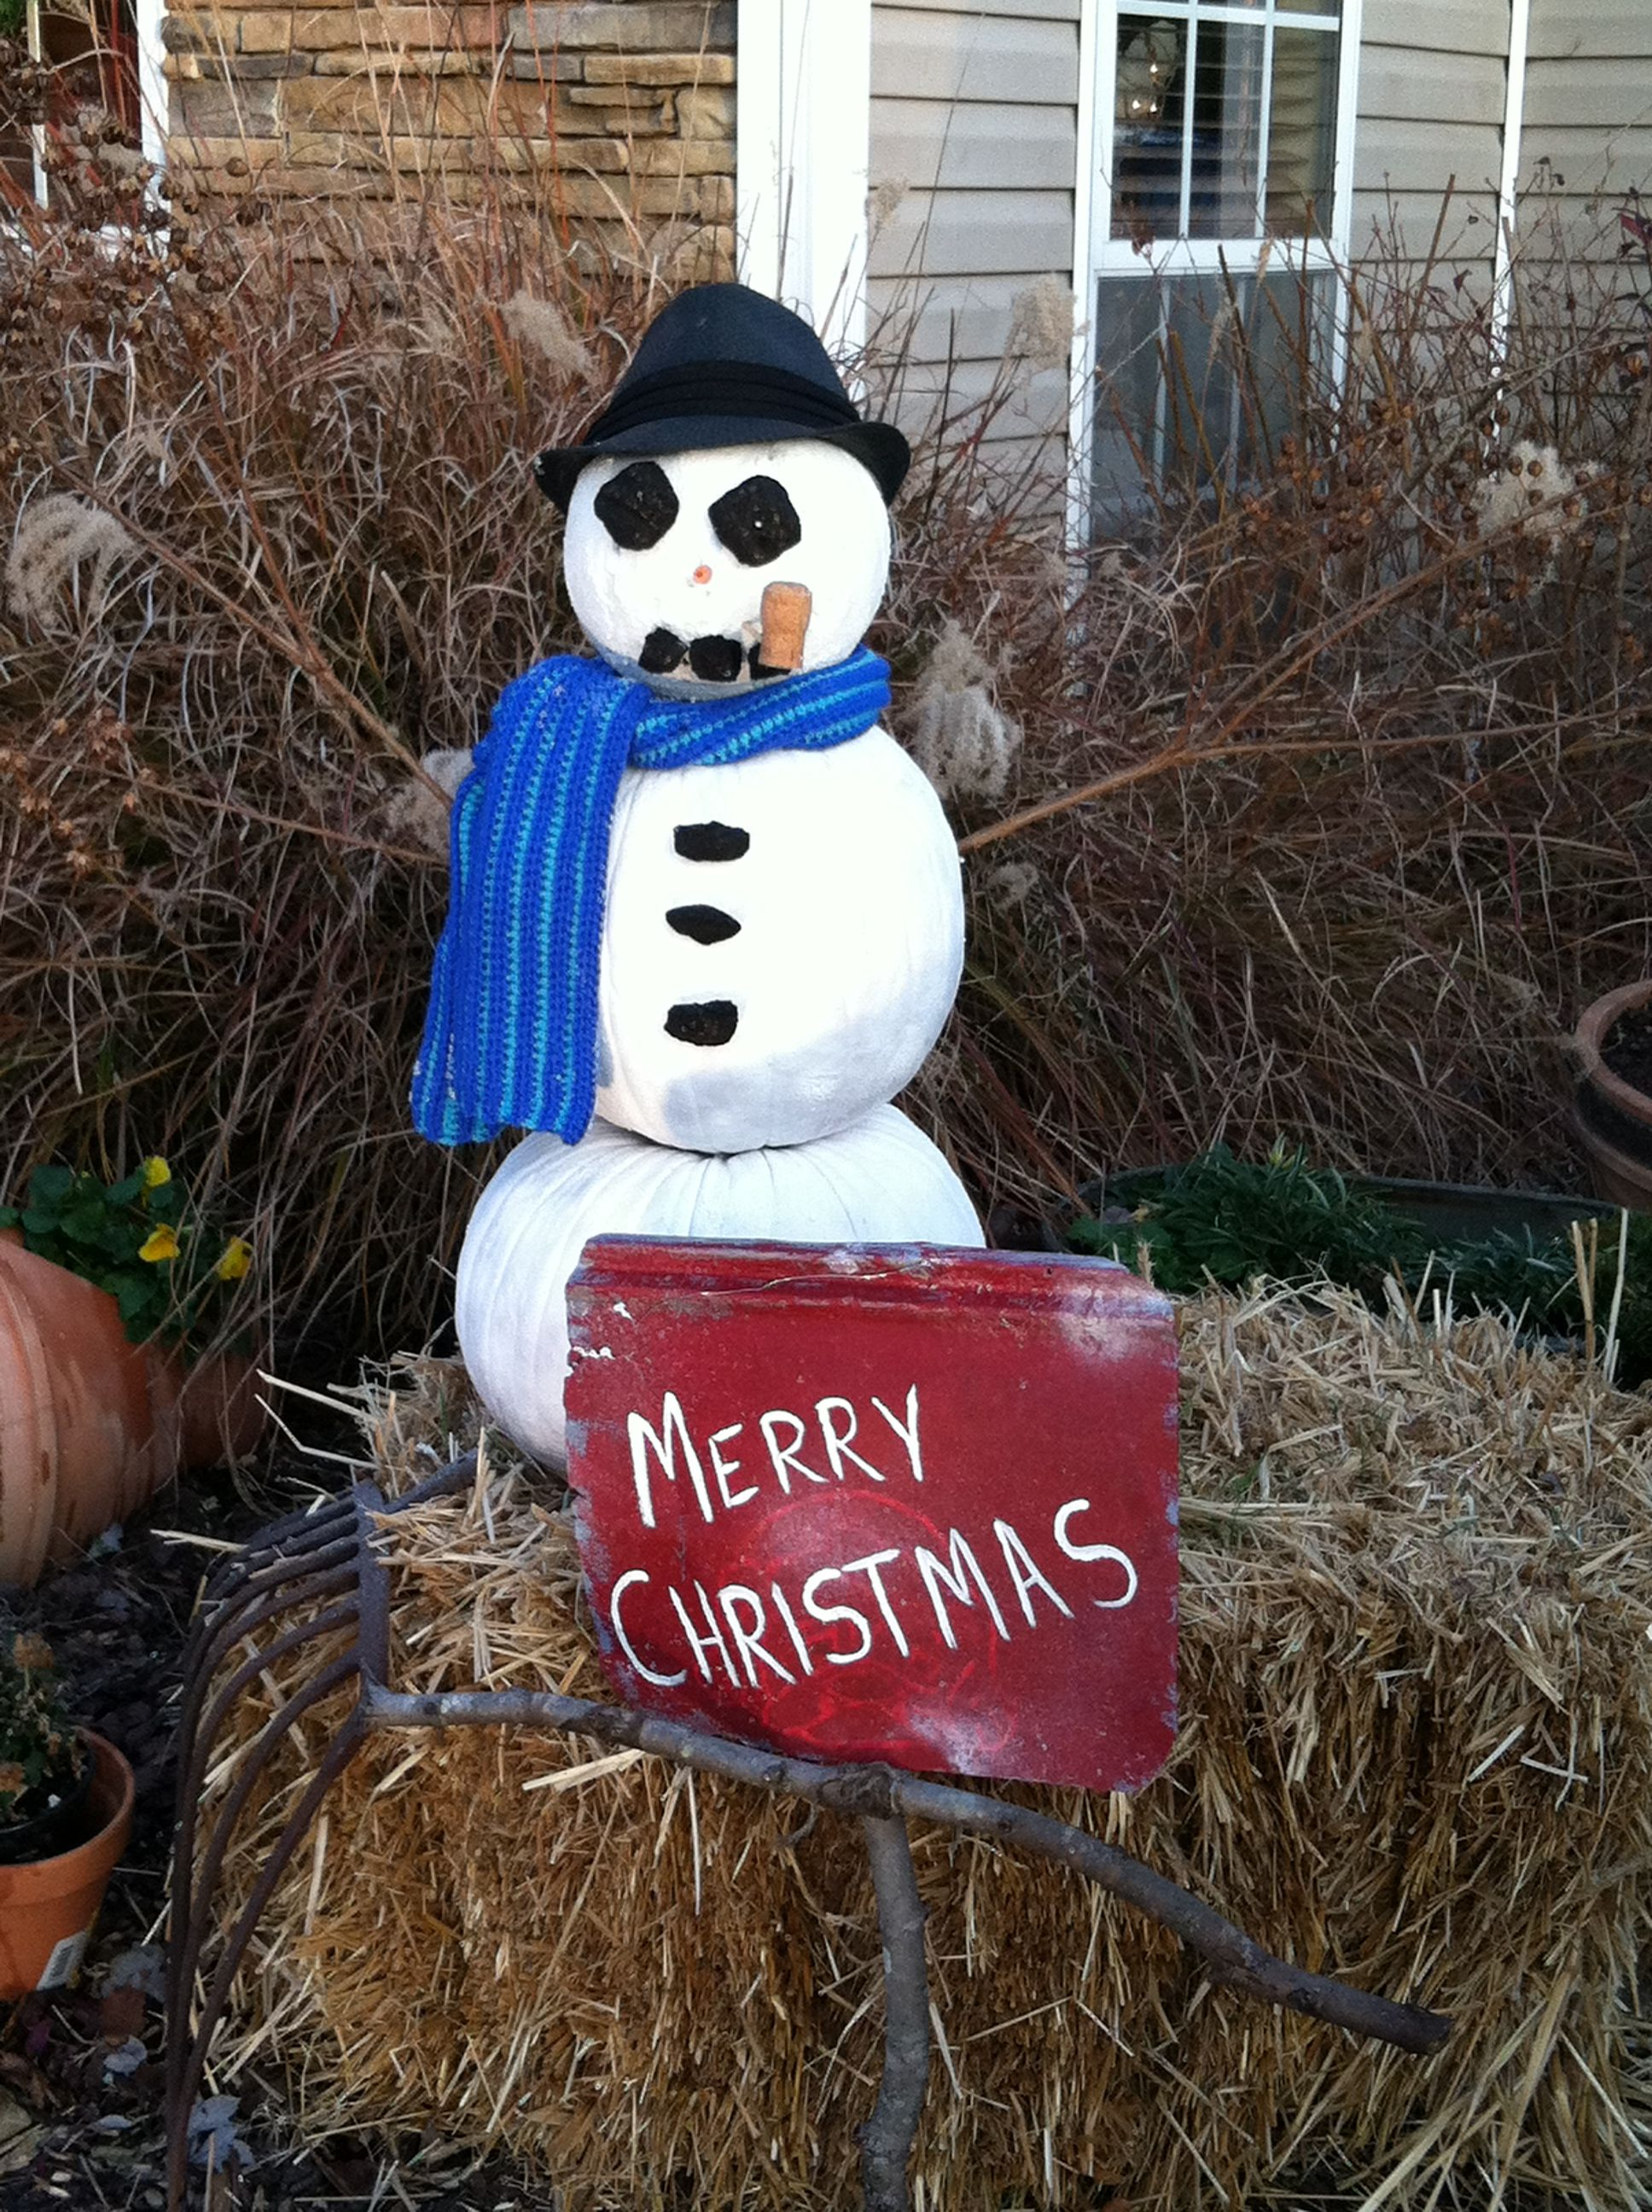 Repurposed pumpkins, crepe myrtle branches, charcoal & carrots.  Merry Christmas snowman